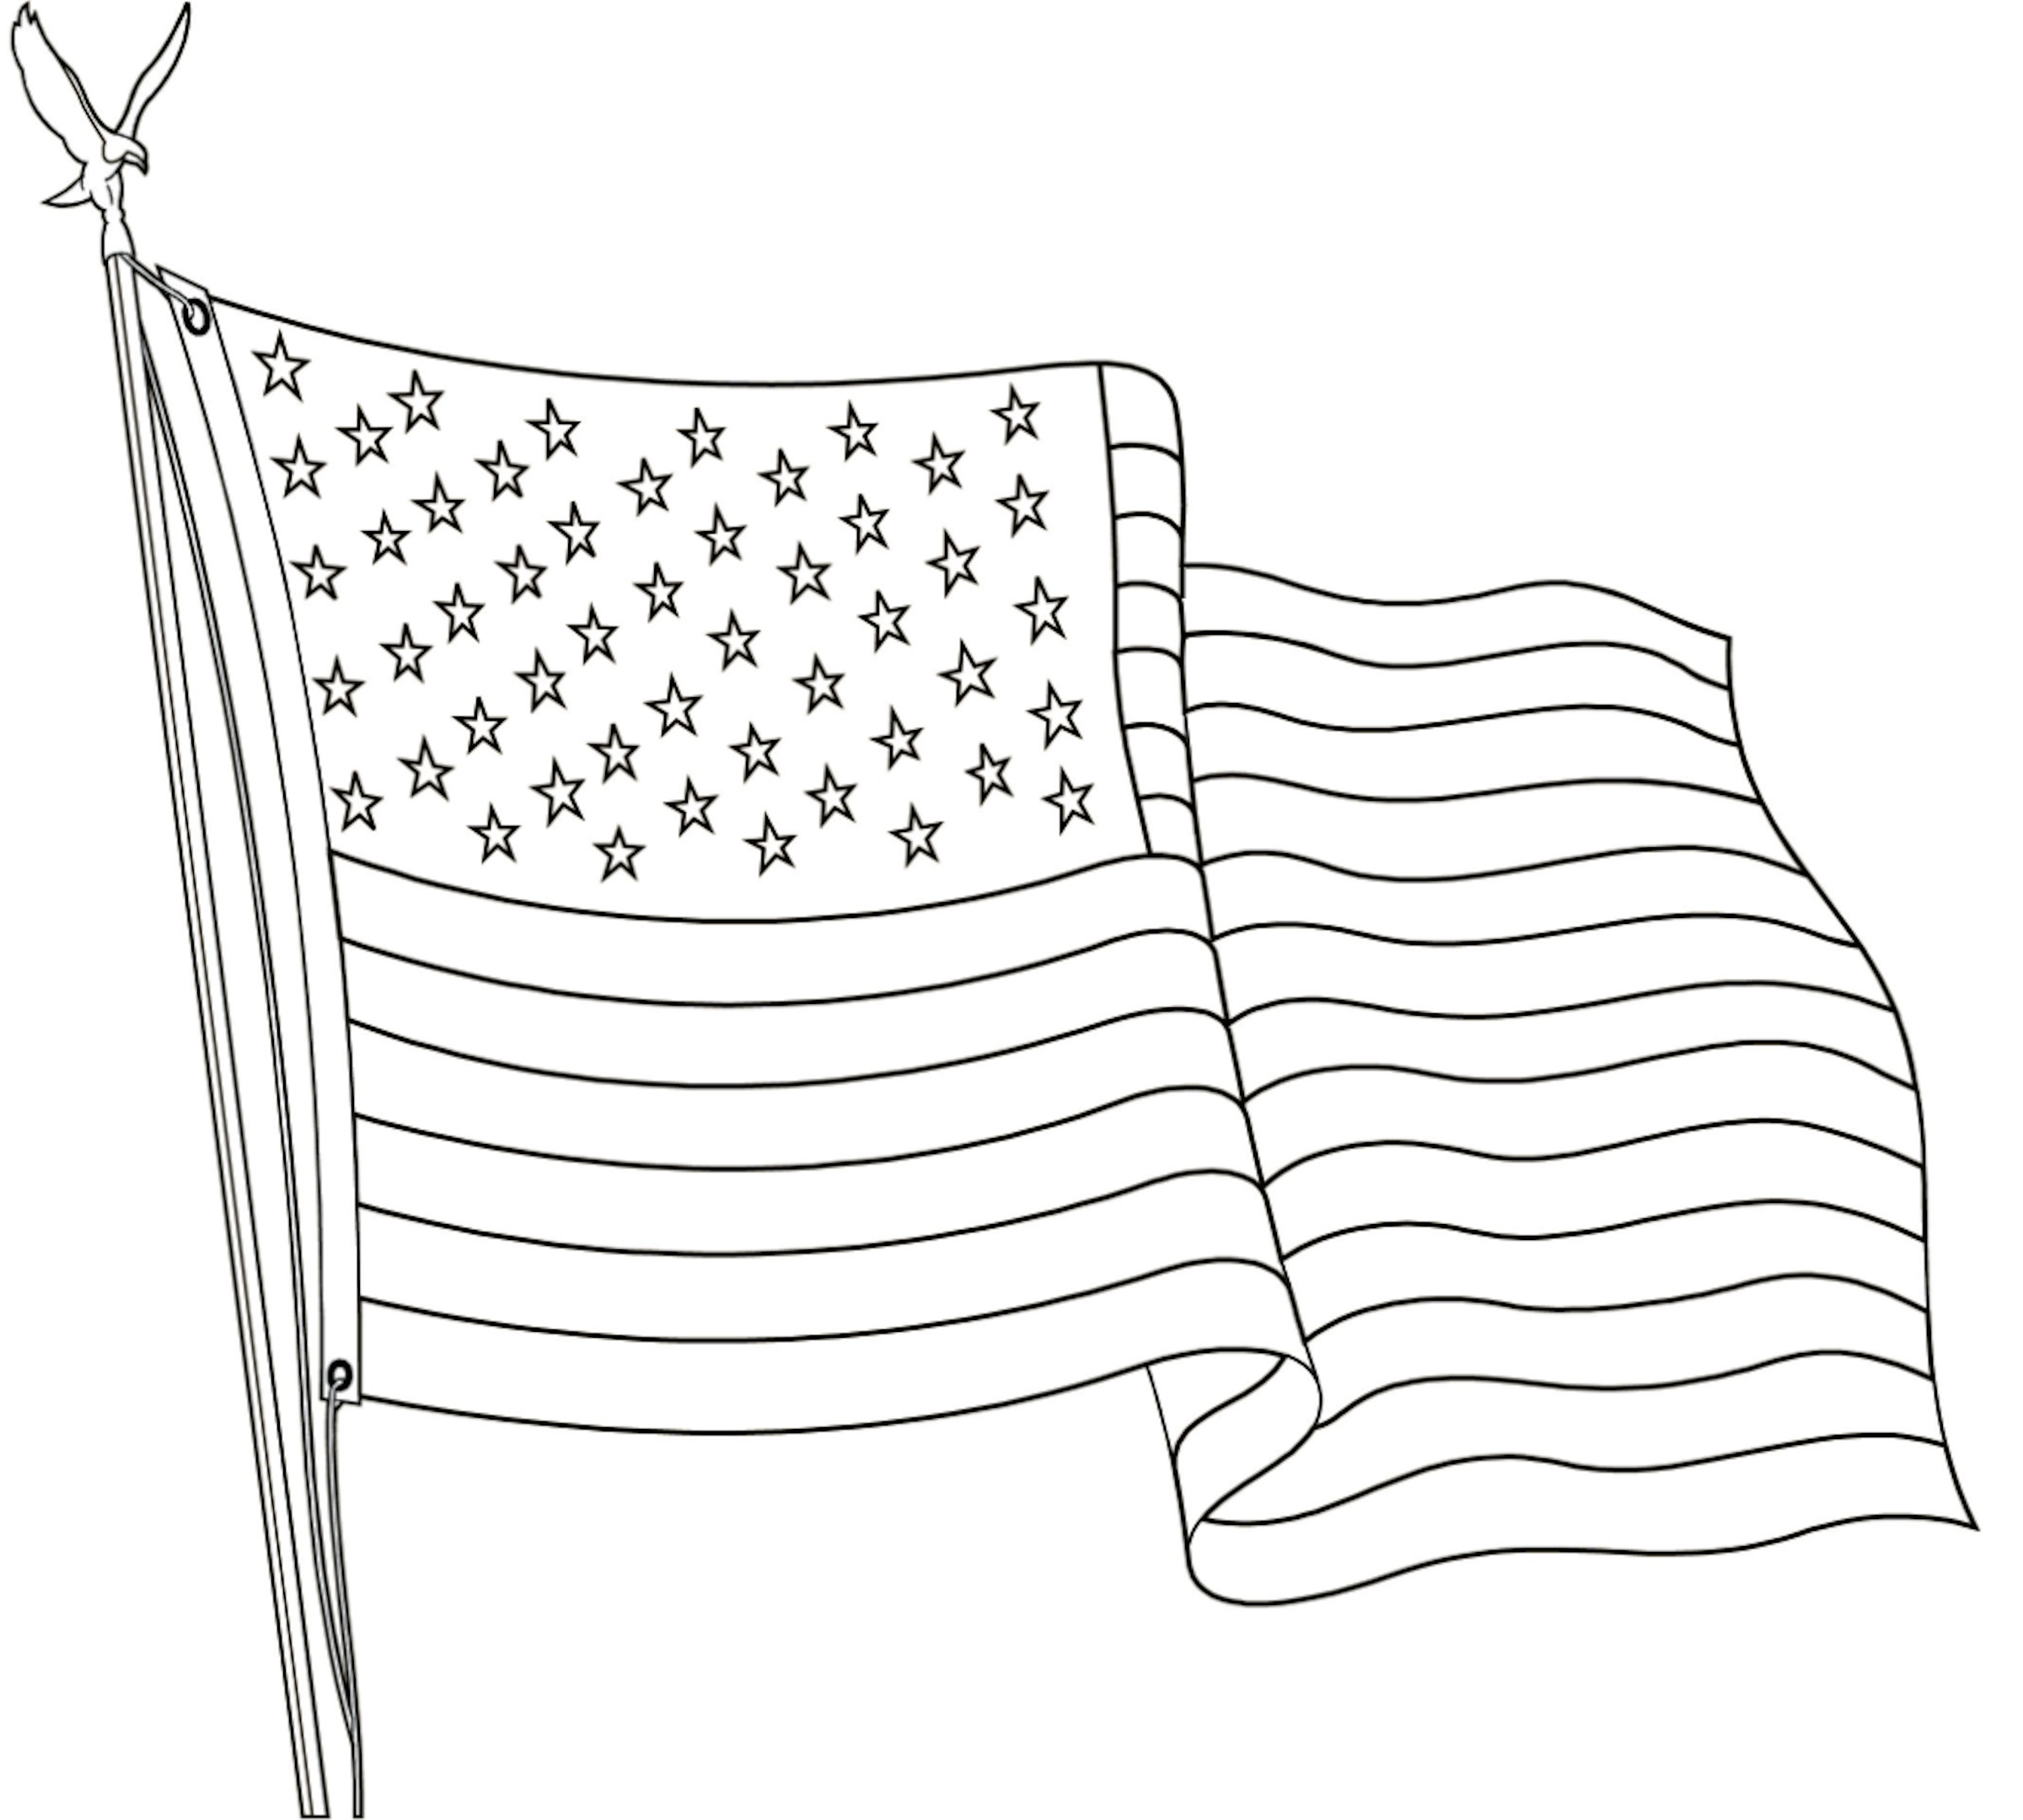 FREE Printable US Flags & American Flag color book pages